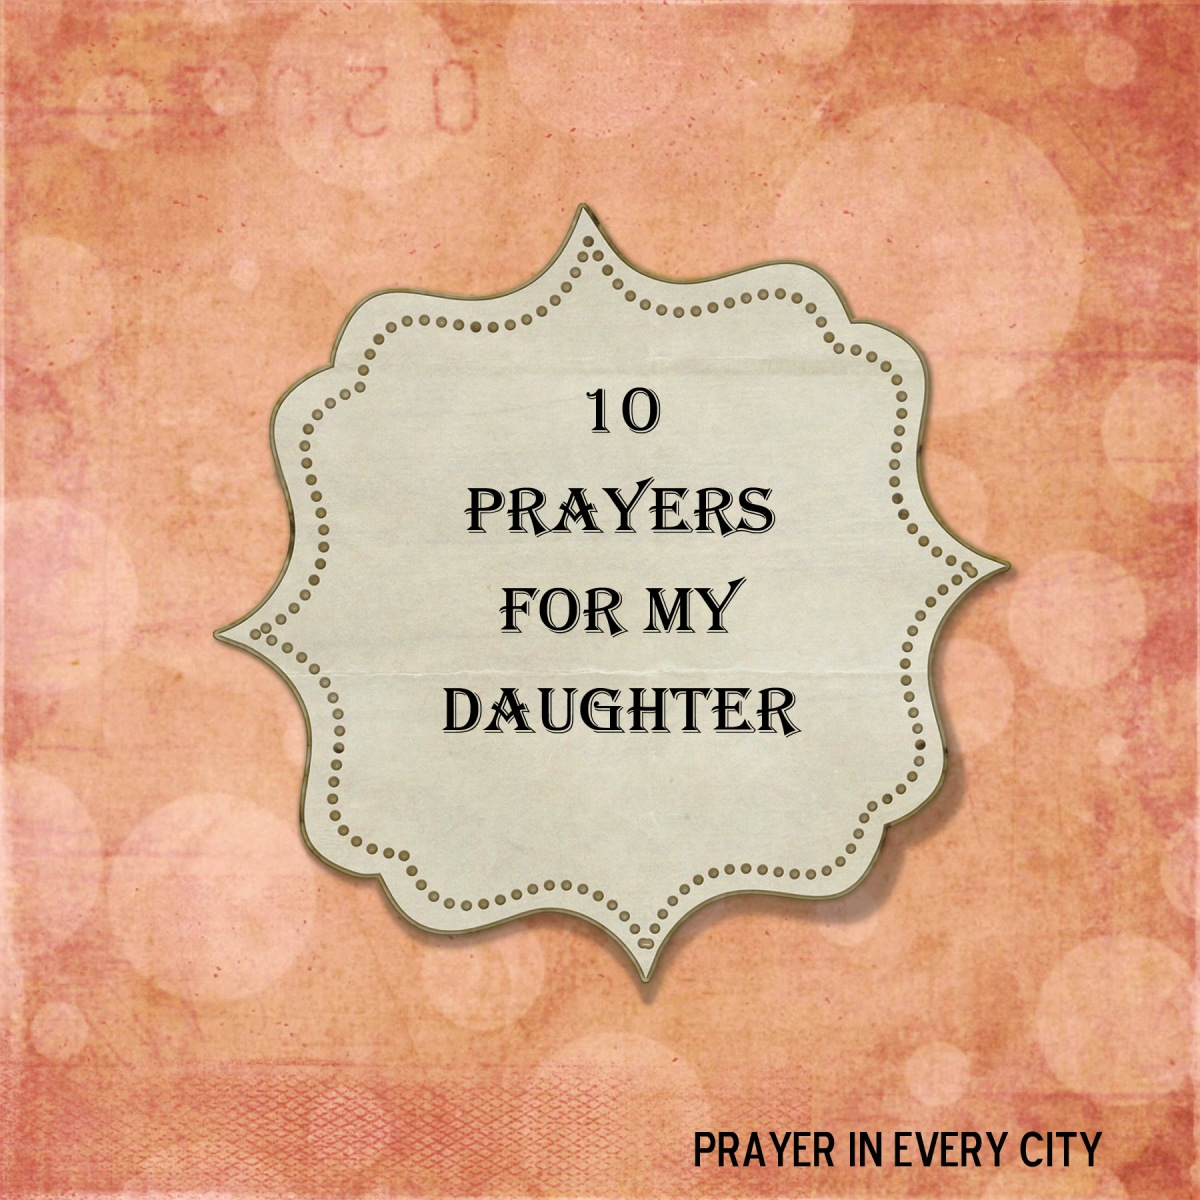 10 Prayers for My Daughter - NEW!